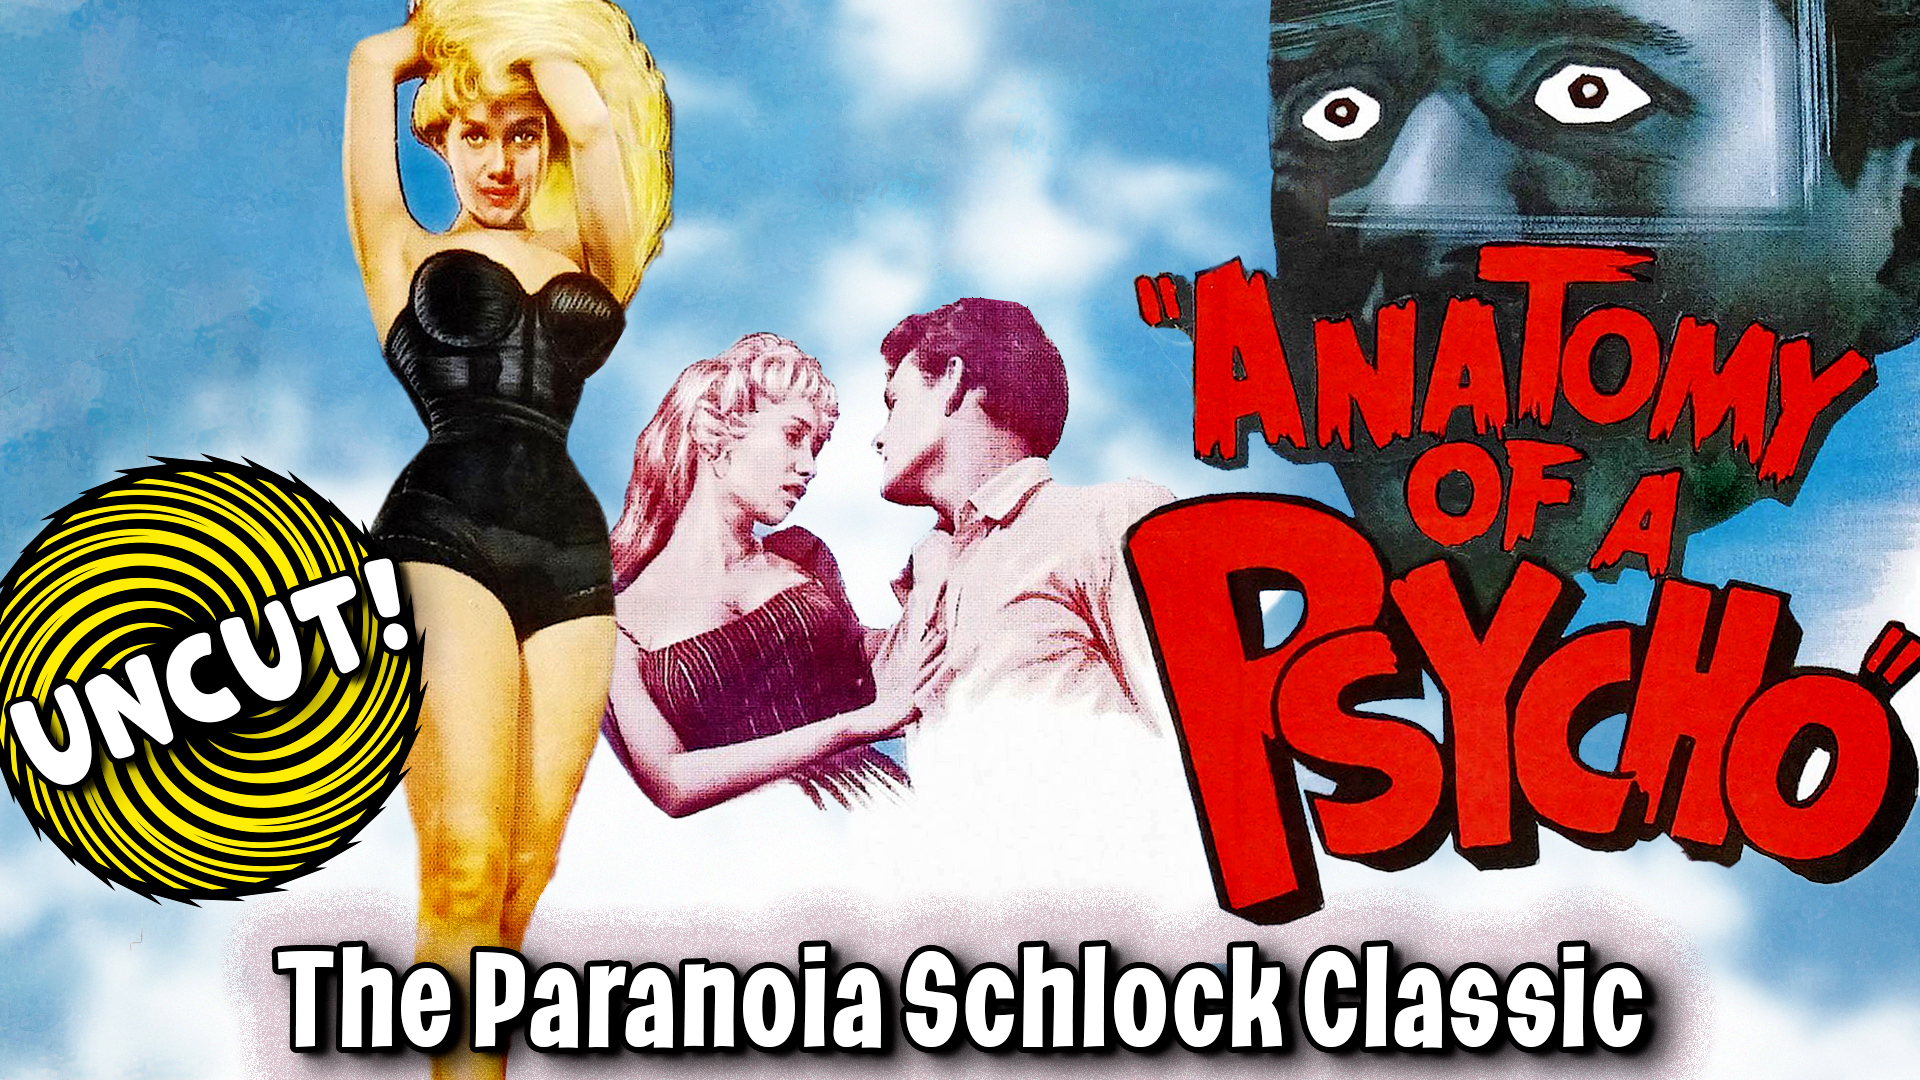 Anatomy Of A Psycho - The Paranoia Schlock Classic, Uncut!